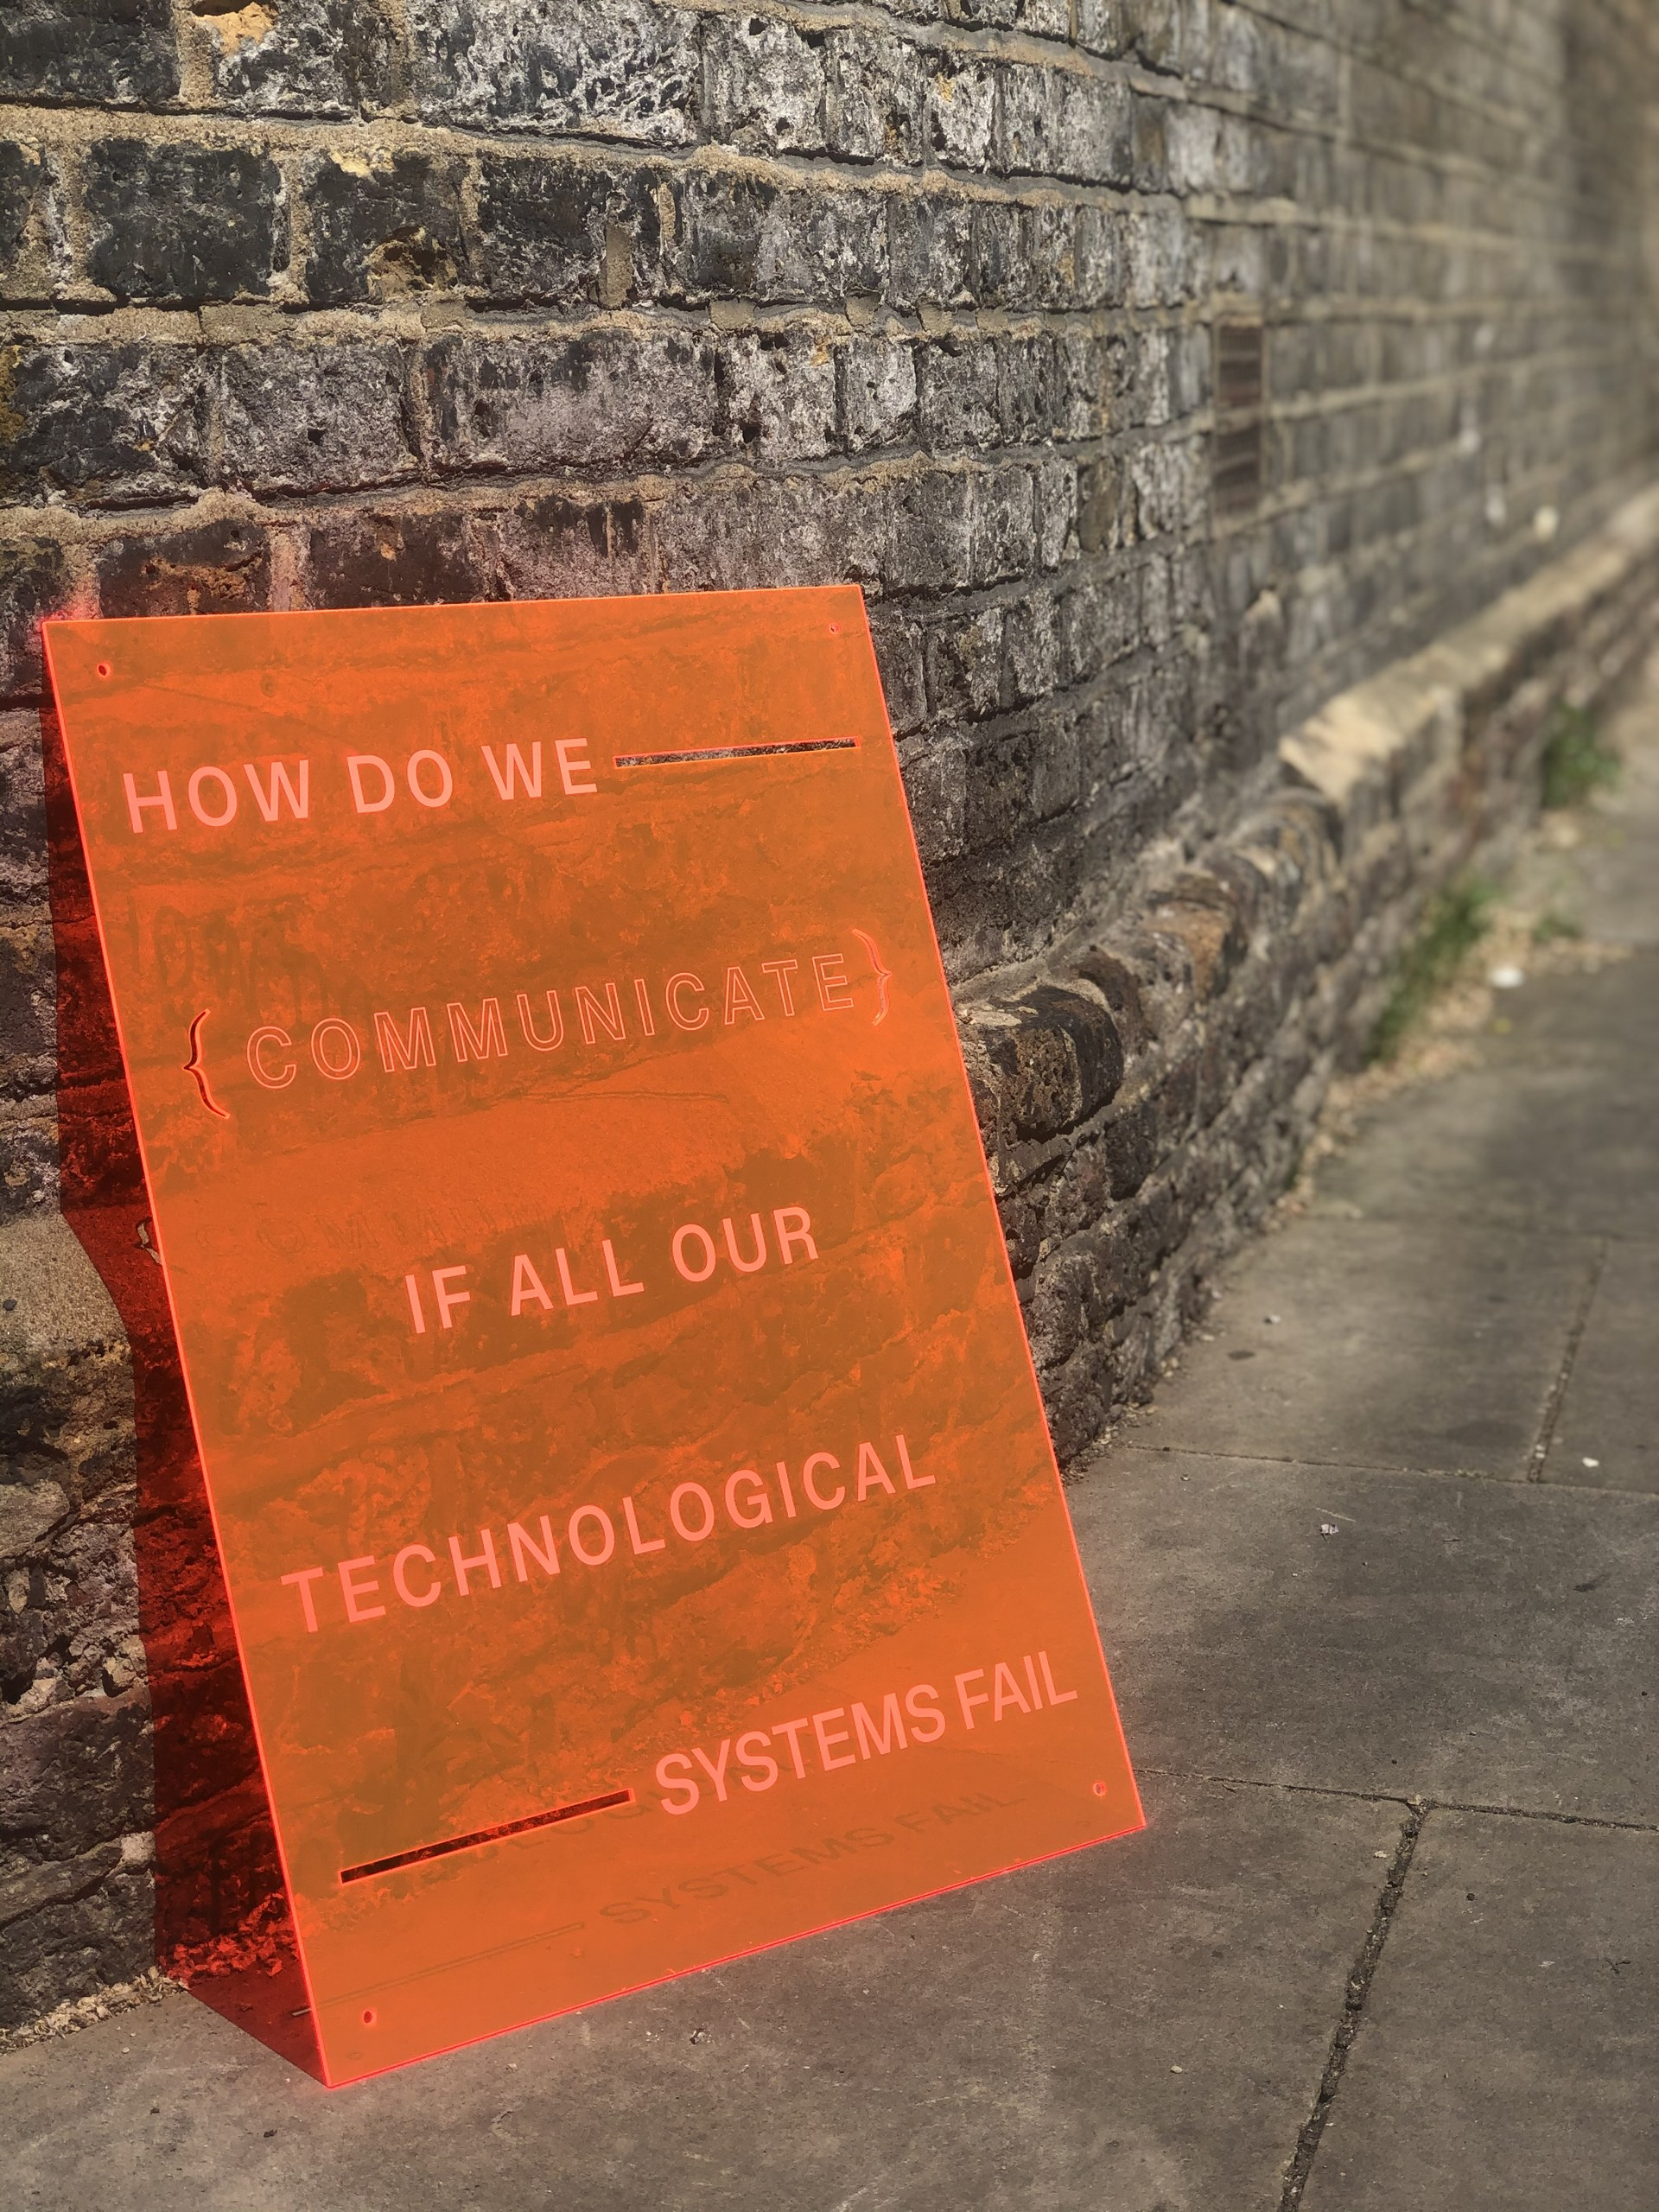 HOW DO WE COMMUNICATE IF ALL OUR TECHNOLOGICAL SYSTEMS FAIL